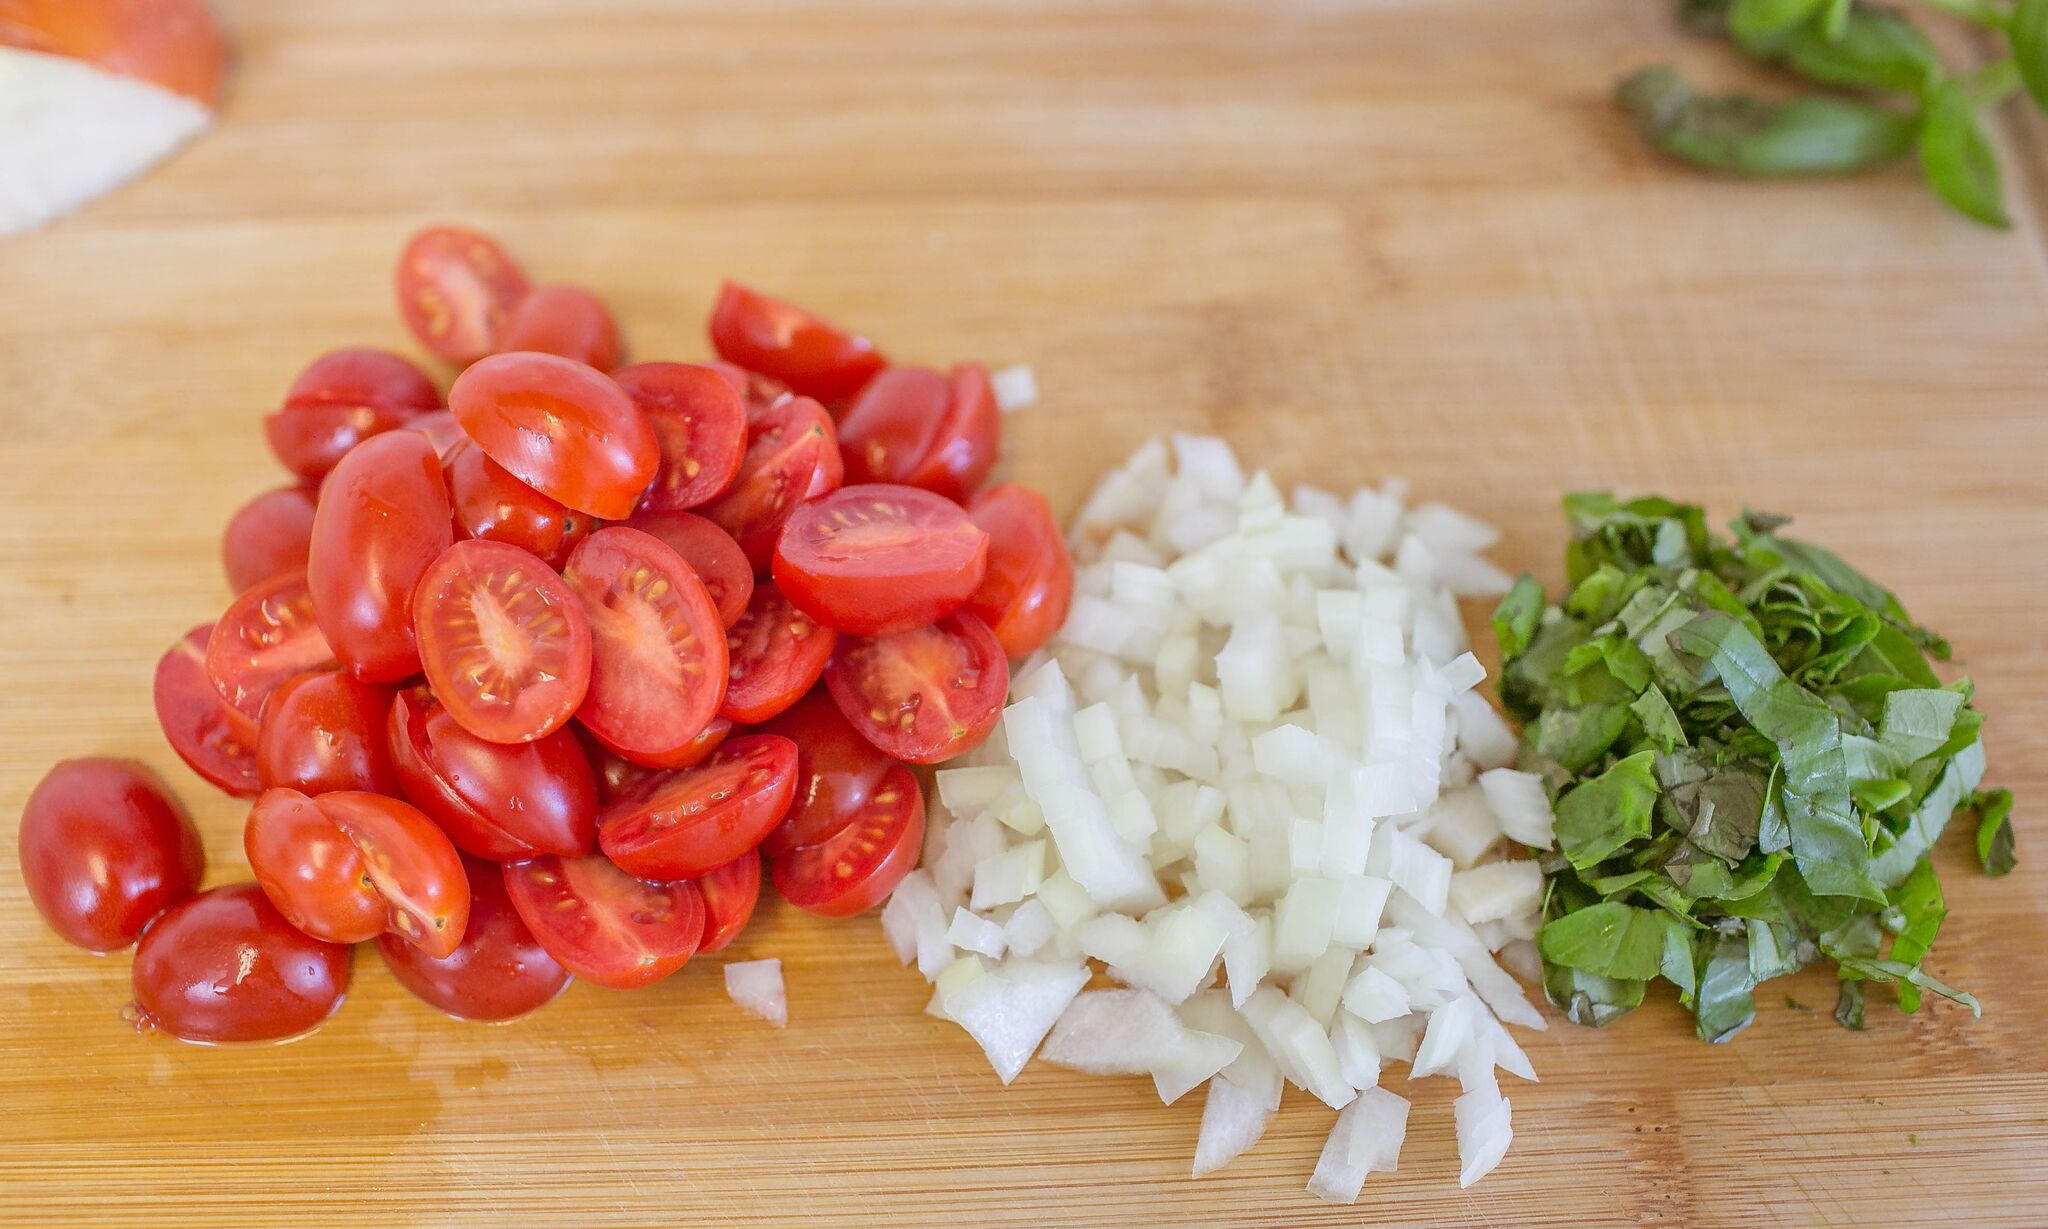 Dice onion, slice tomatoes, and chop basil then set aside.